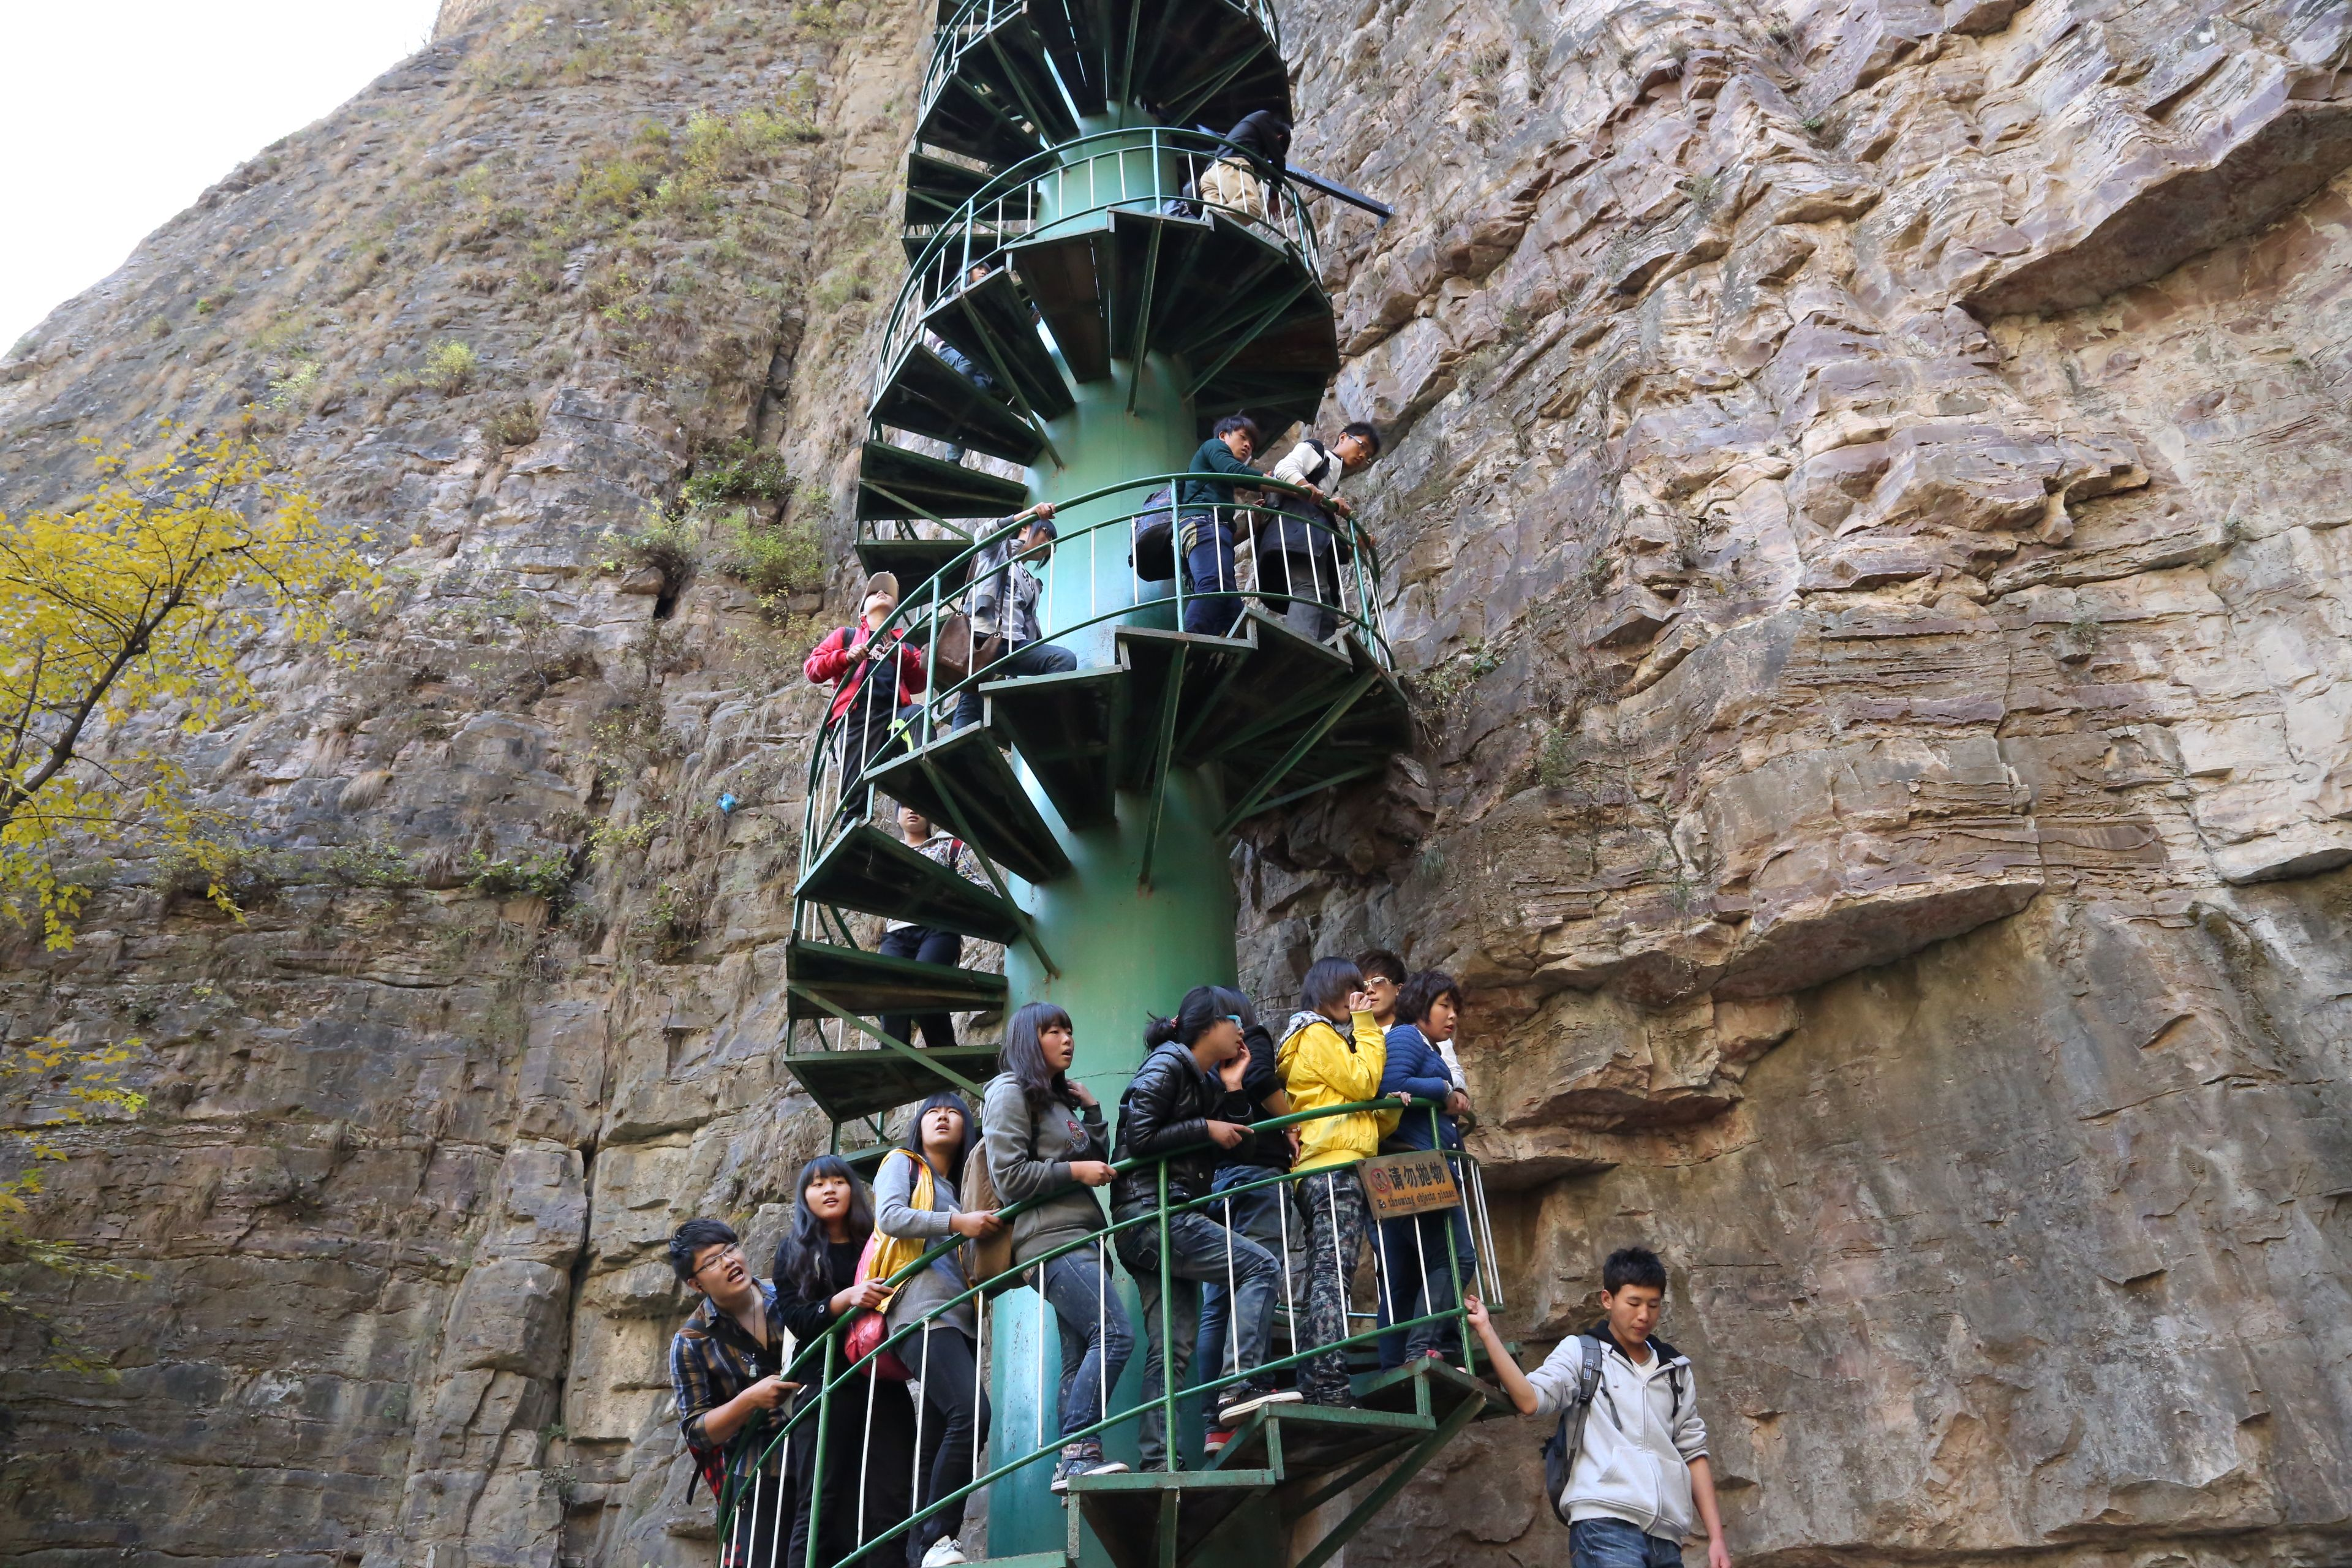 MT TAIHANG, CHINA If you want all thrills of mountaineering without trekking a mountain, visit Linzhou in China. The 300ft tall spiral staircase installed on a wall of Mt Taihang is for those who seek adrenaline rush. Only those under 60 are allowed to climb these stairs.